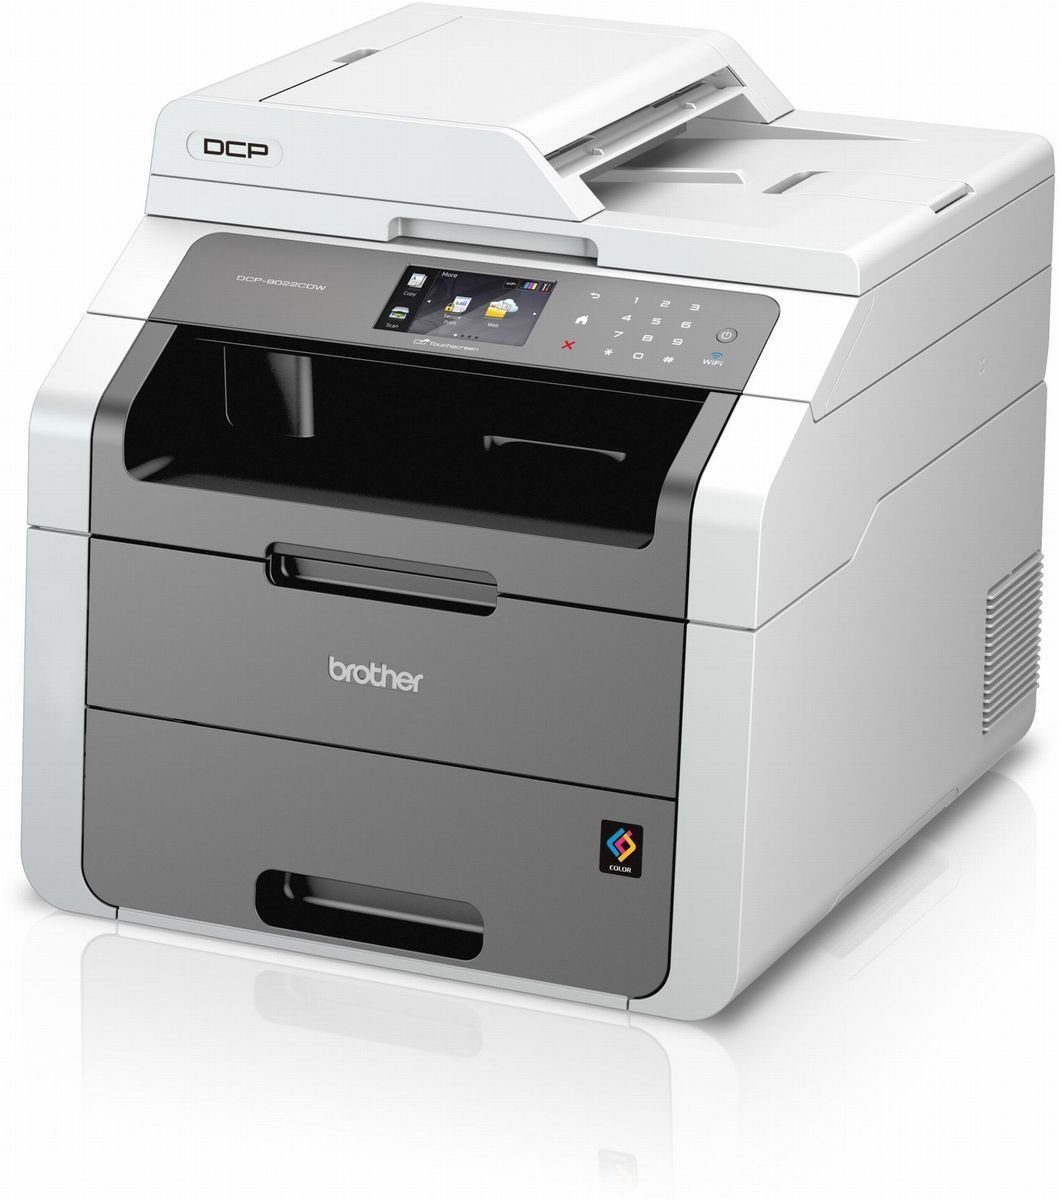 Brother Farblaser-Multifunktionsdrucker »DCP-9022CDW 3in1«